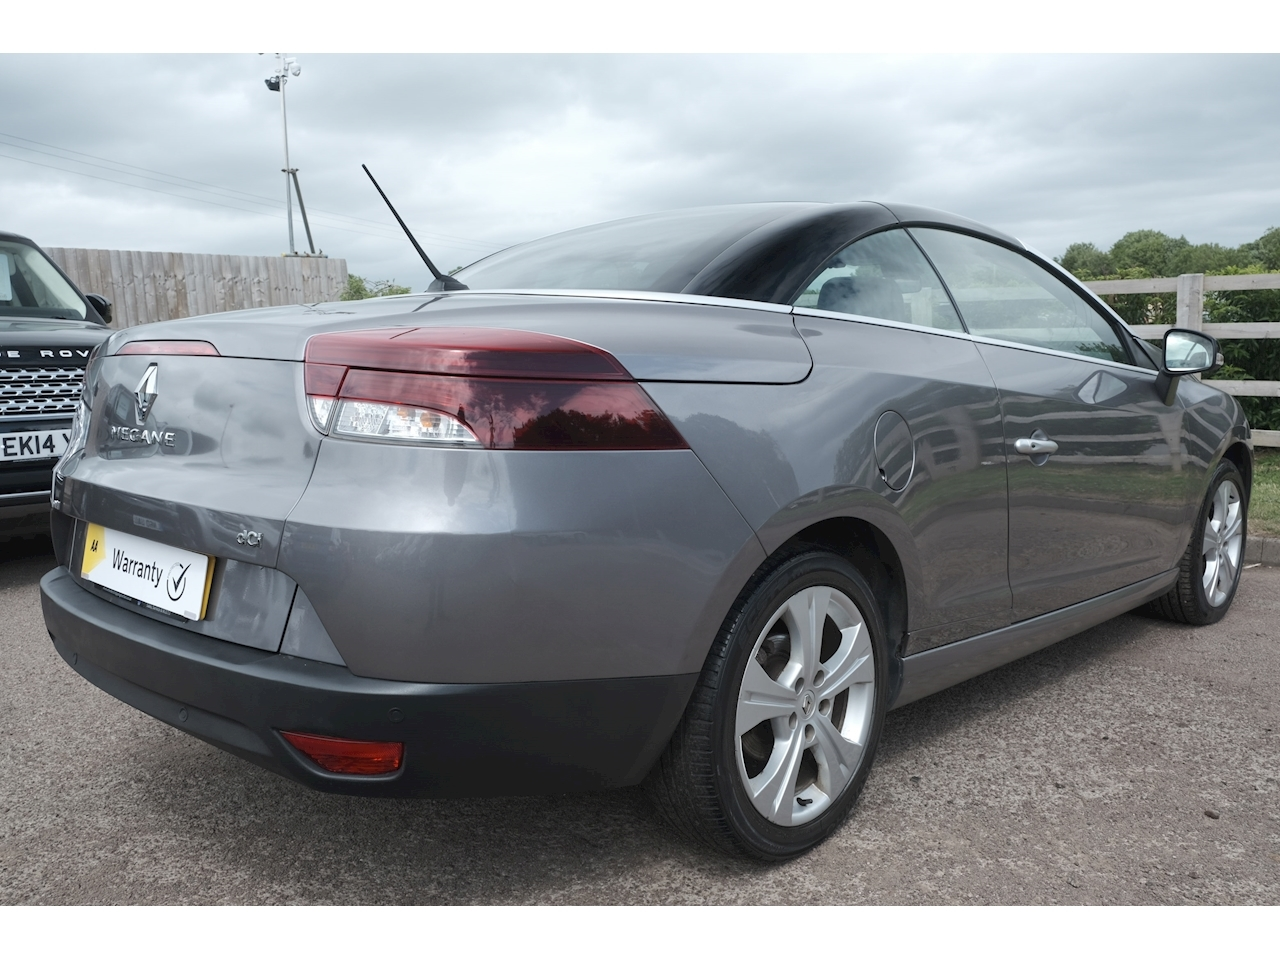 Renault Megane Dynamique Tom Tom Convertible 1.9 Manual Diesel